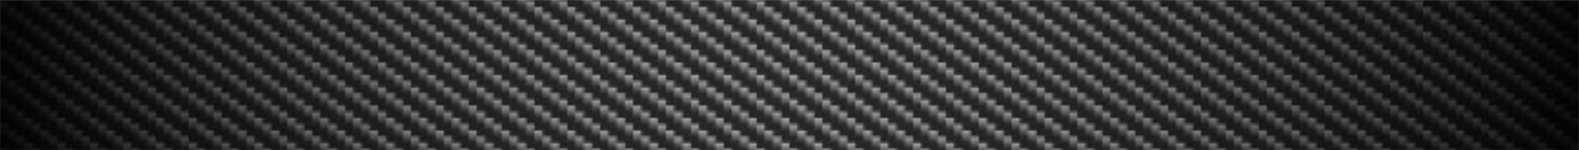 carbon fiber header.png